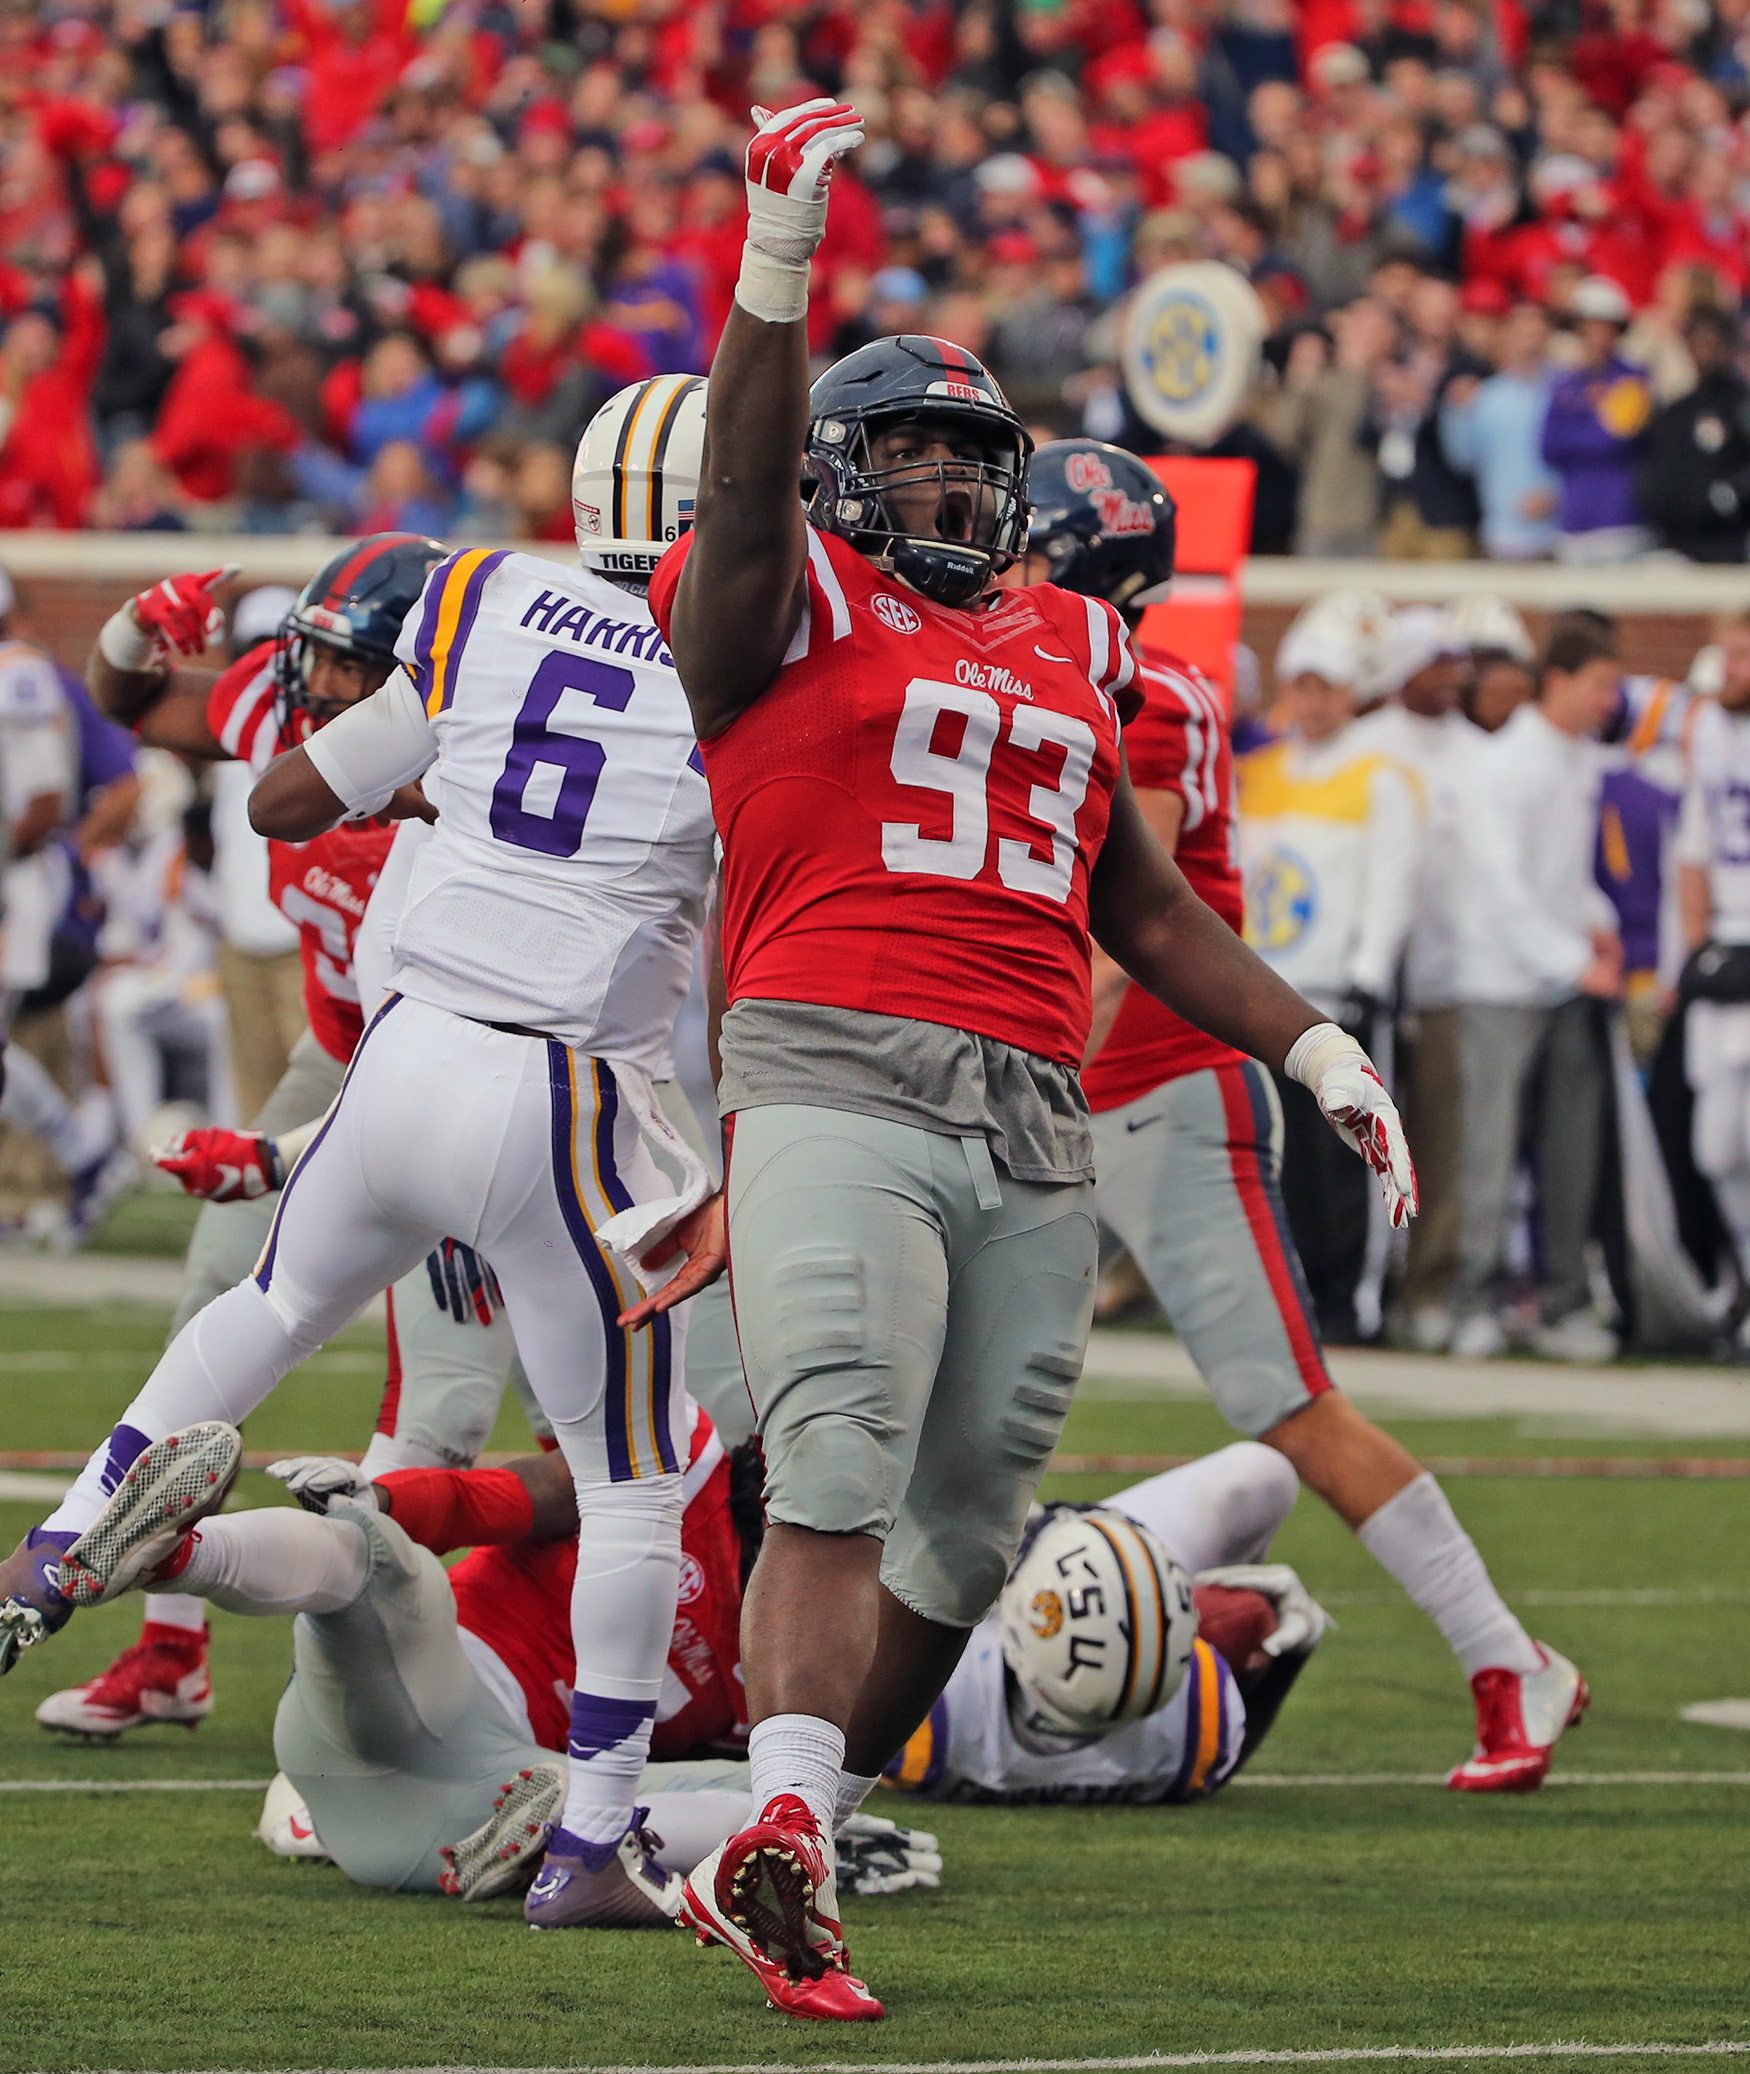 Ole Miss Football vs LSU on November 21st, 2015 in Oxford, MS. Photo by Joshua McCoy/Ole Miss Athletics